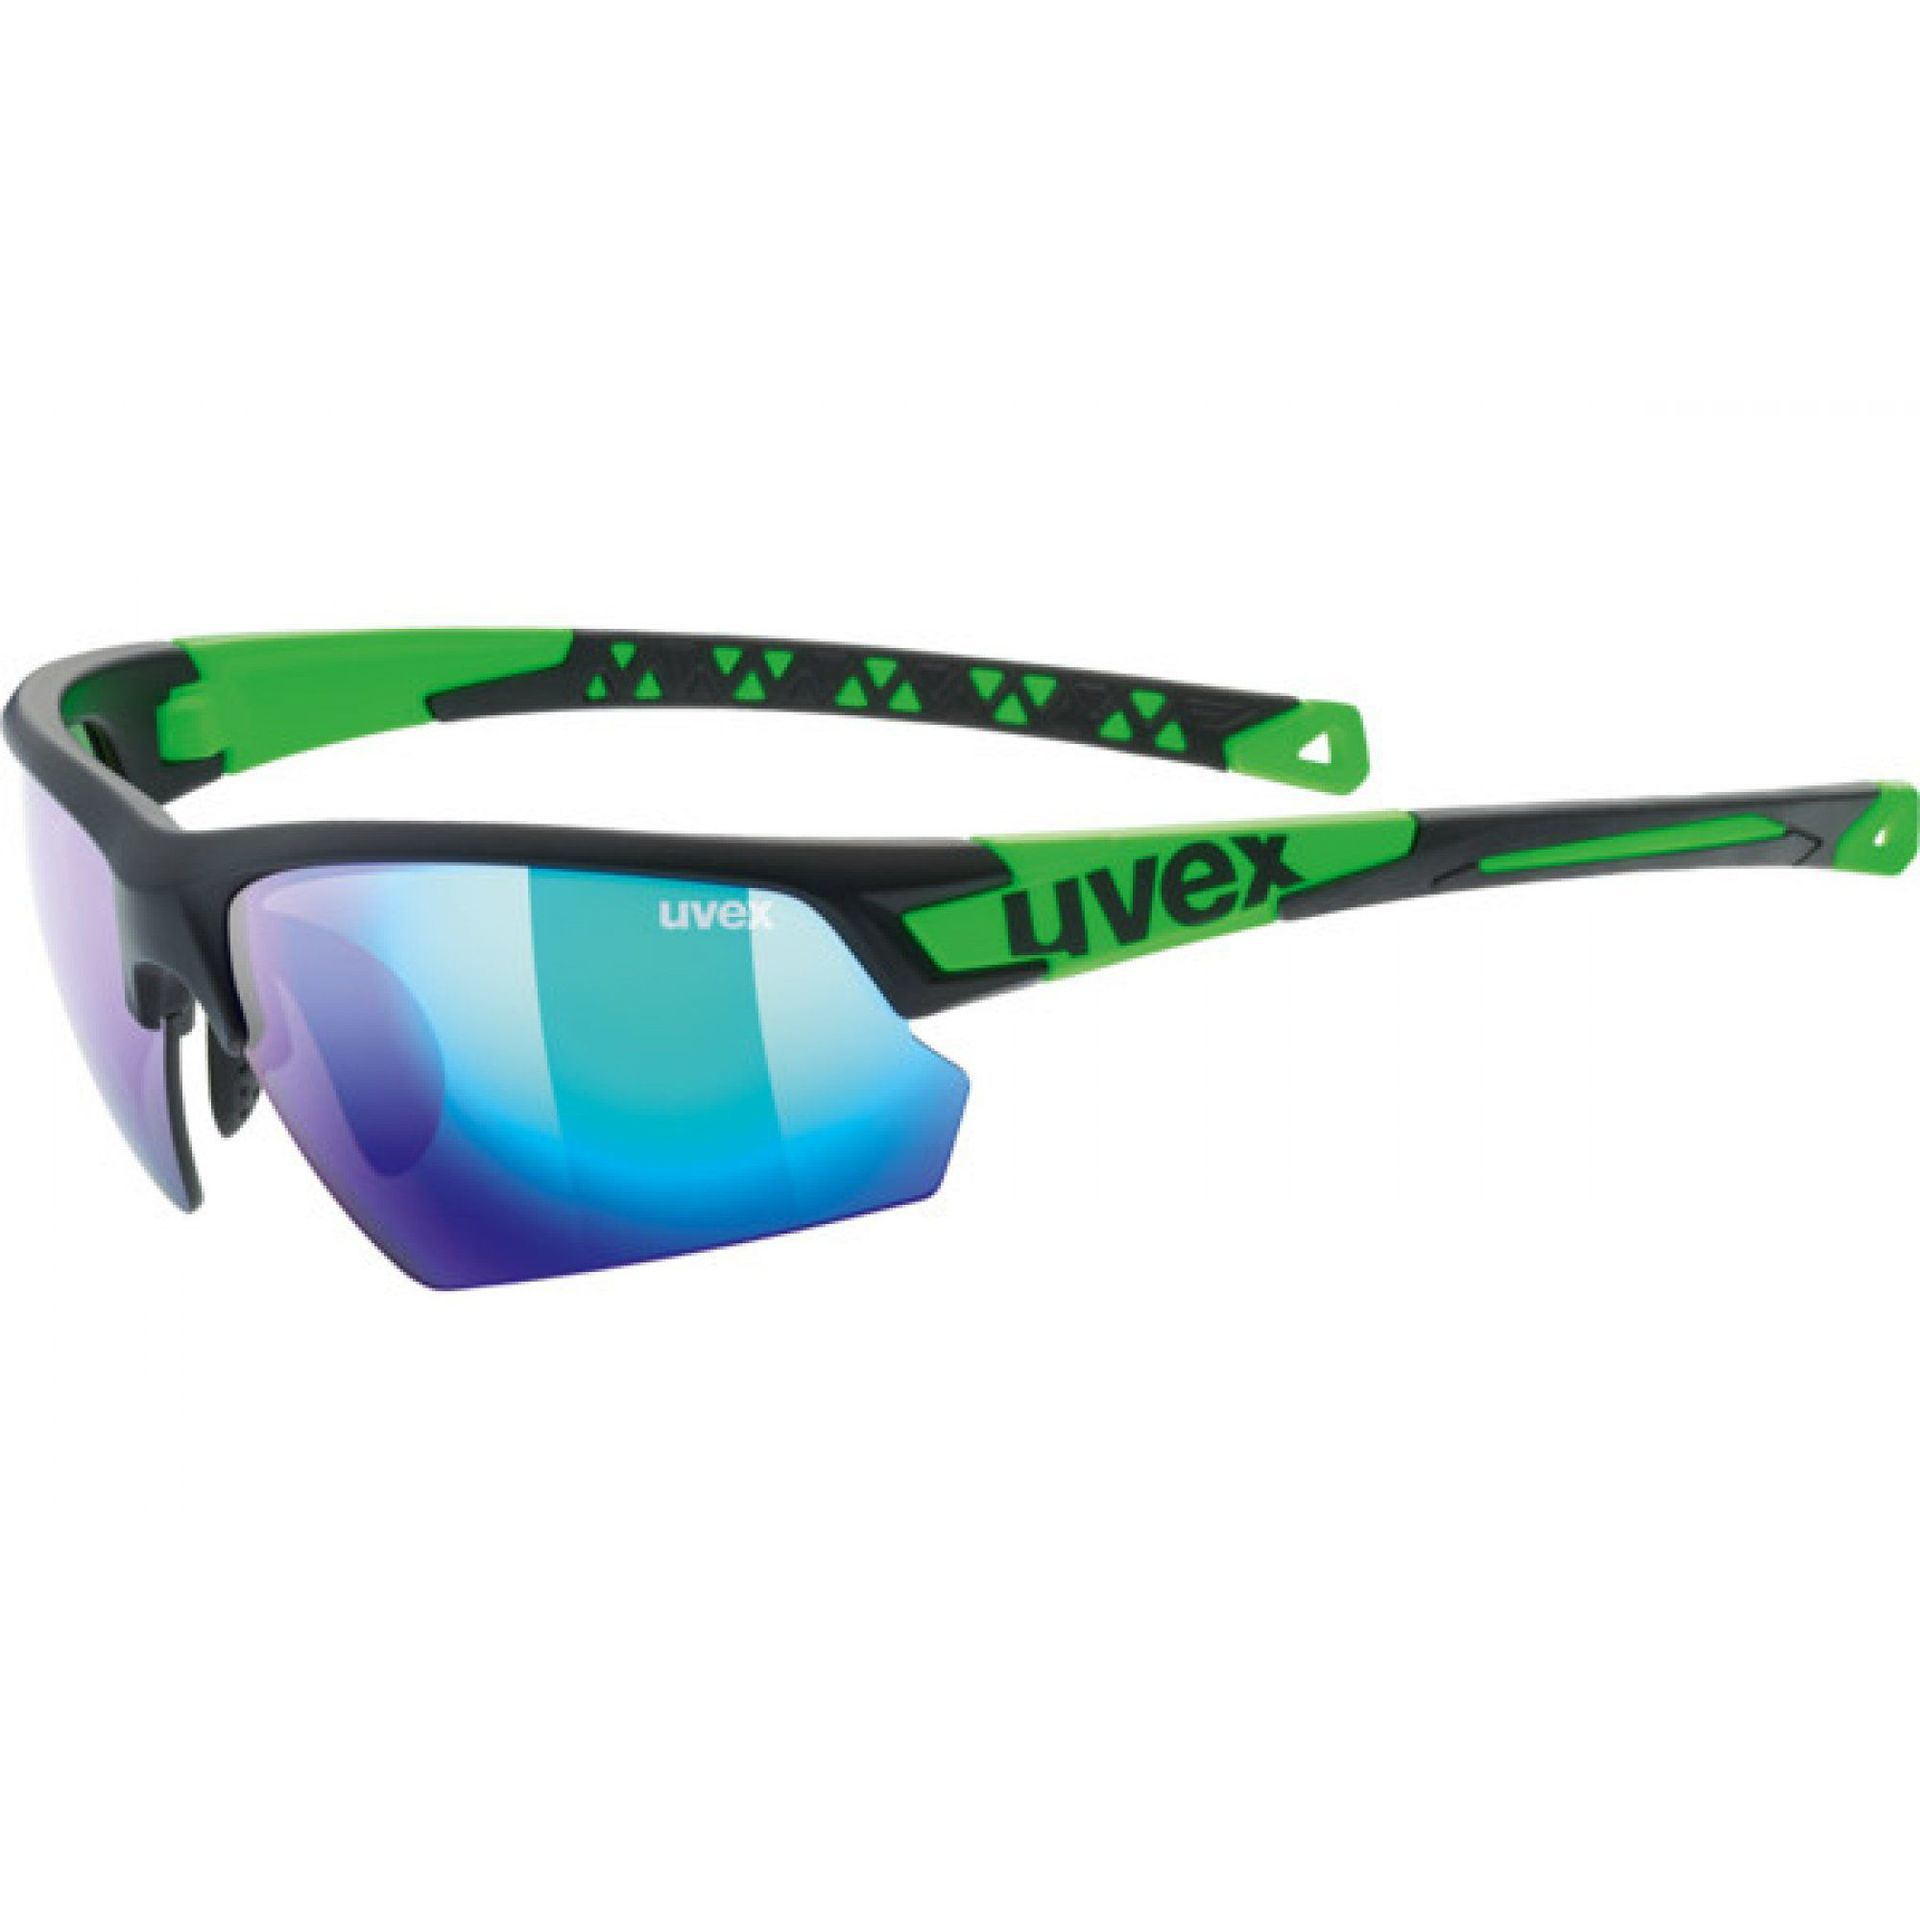 OKULARY UVEX SPORTSTYLE 224 007|2716 BLACK MAT|GREEN